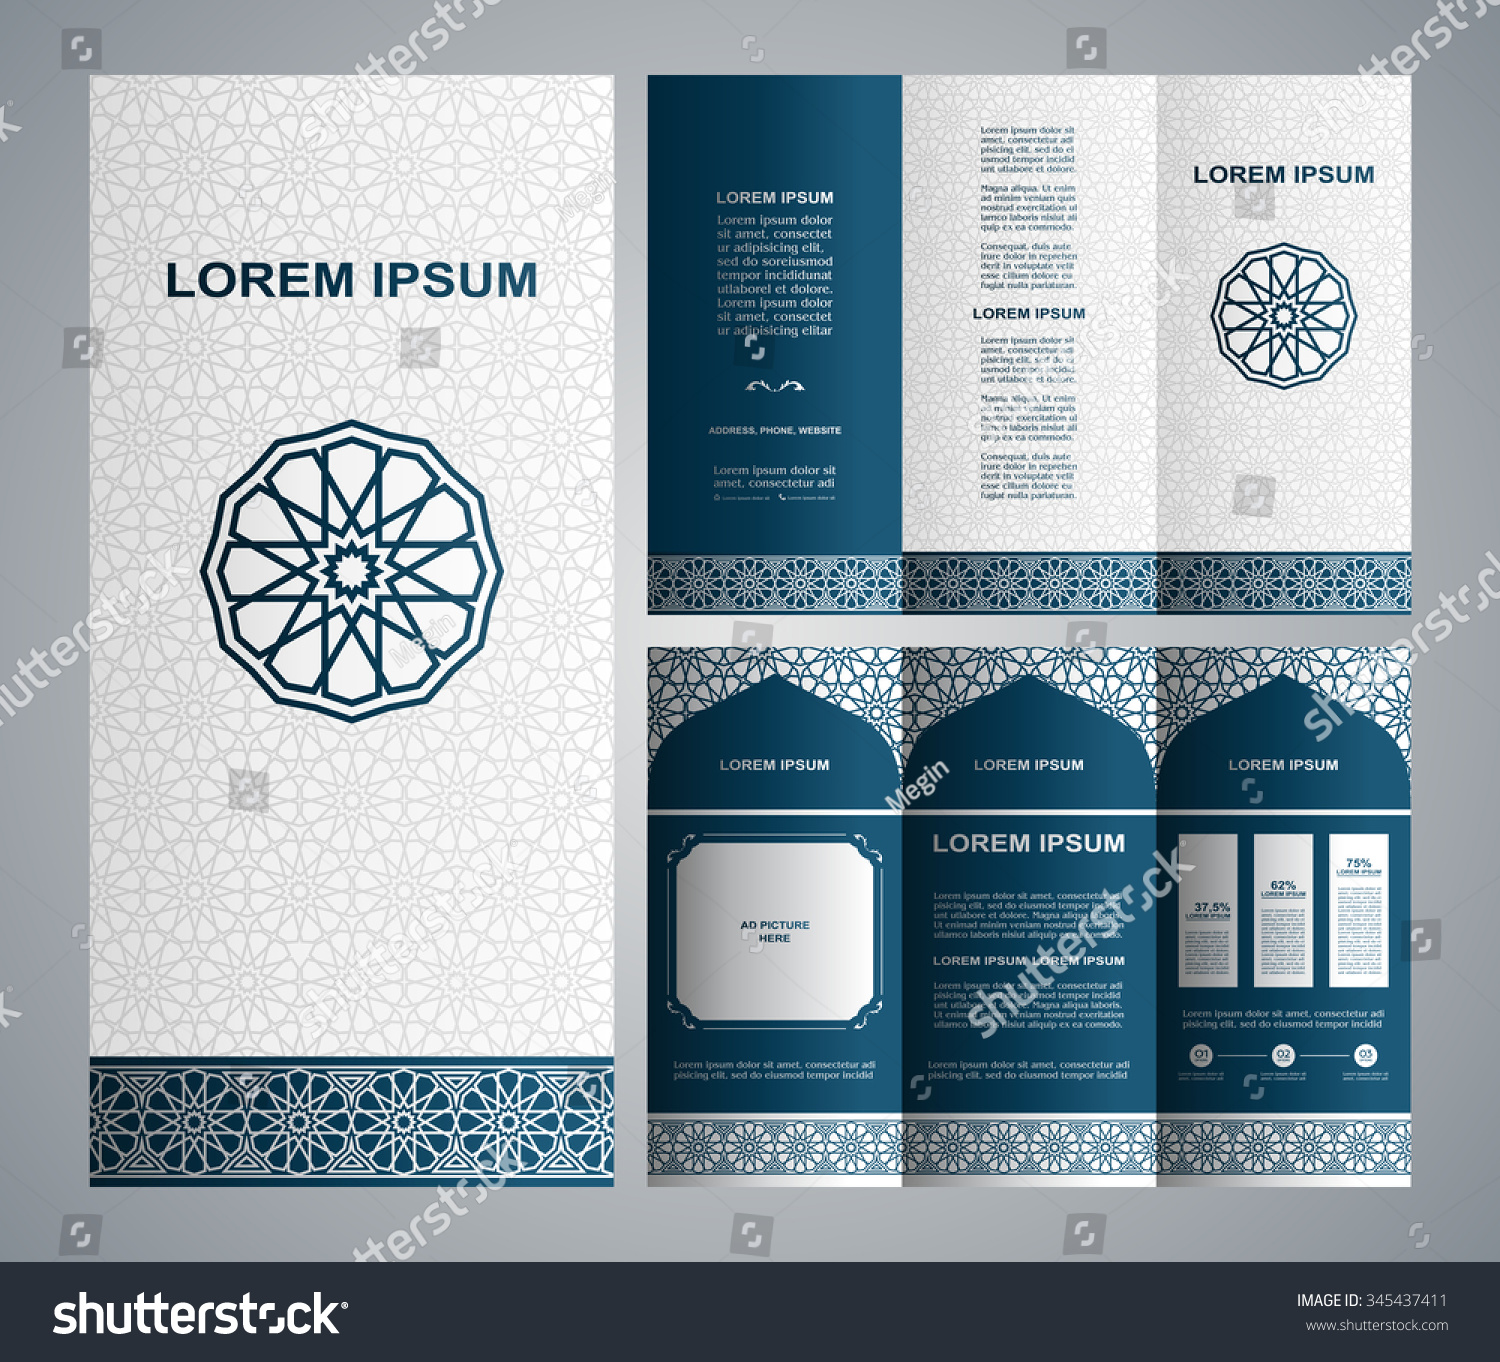 Vintage islamic style brochure and flyer design template with logo ...